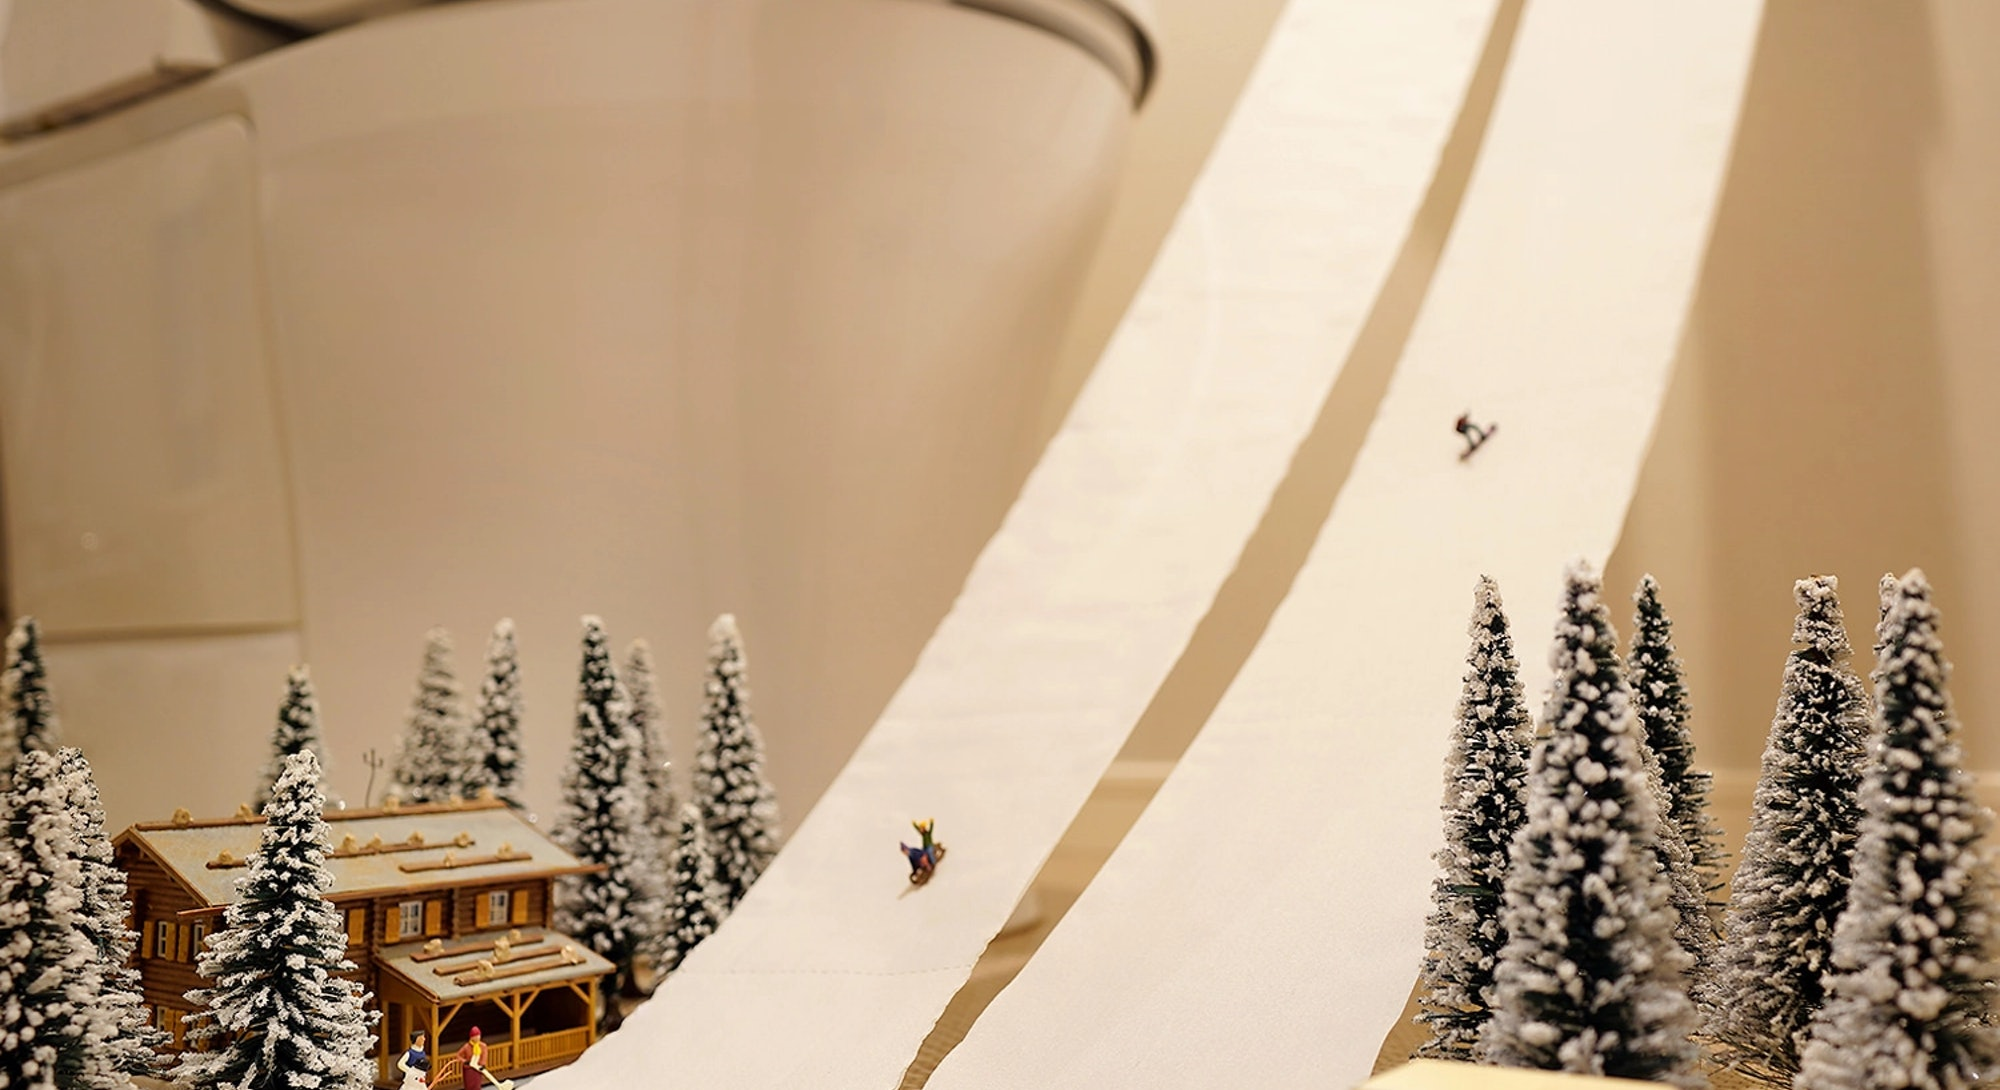 Tatsuya Tanaka makes miniature worlds out of everyday objects and human figurines.